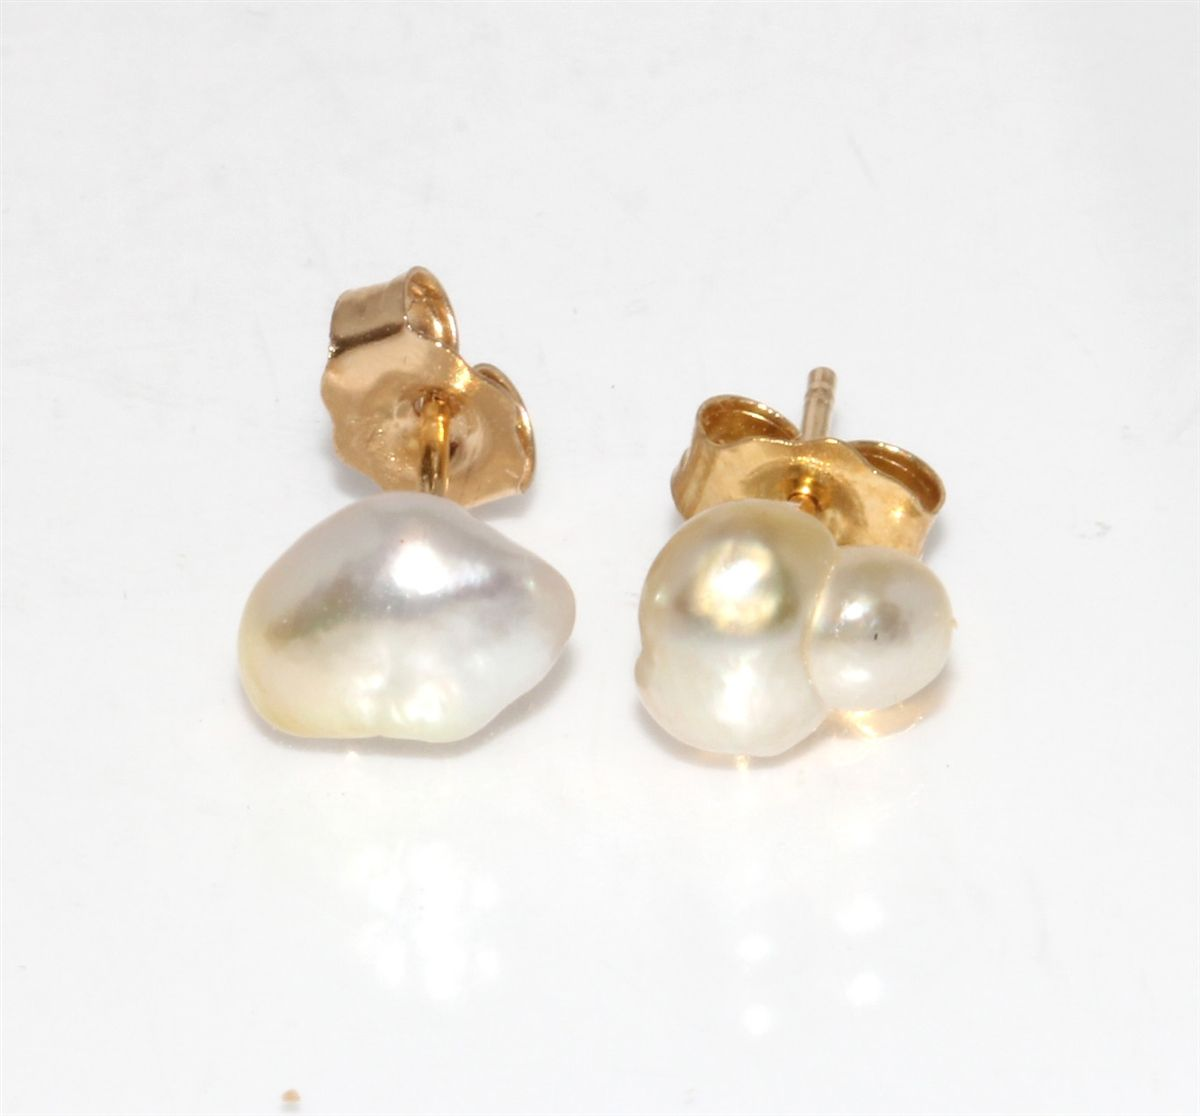 pearl pearls to earring own how earrings baroque lovely stud your of inspirational make